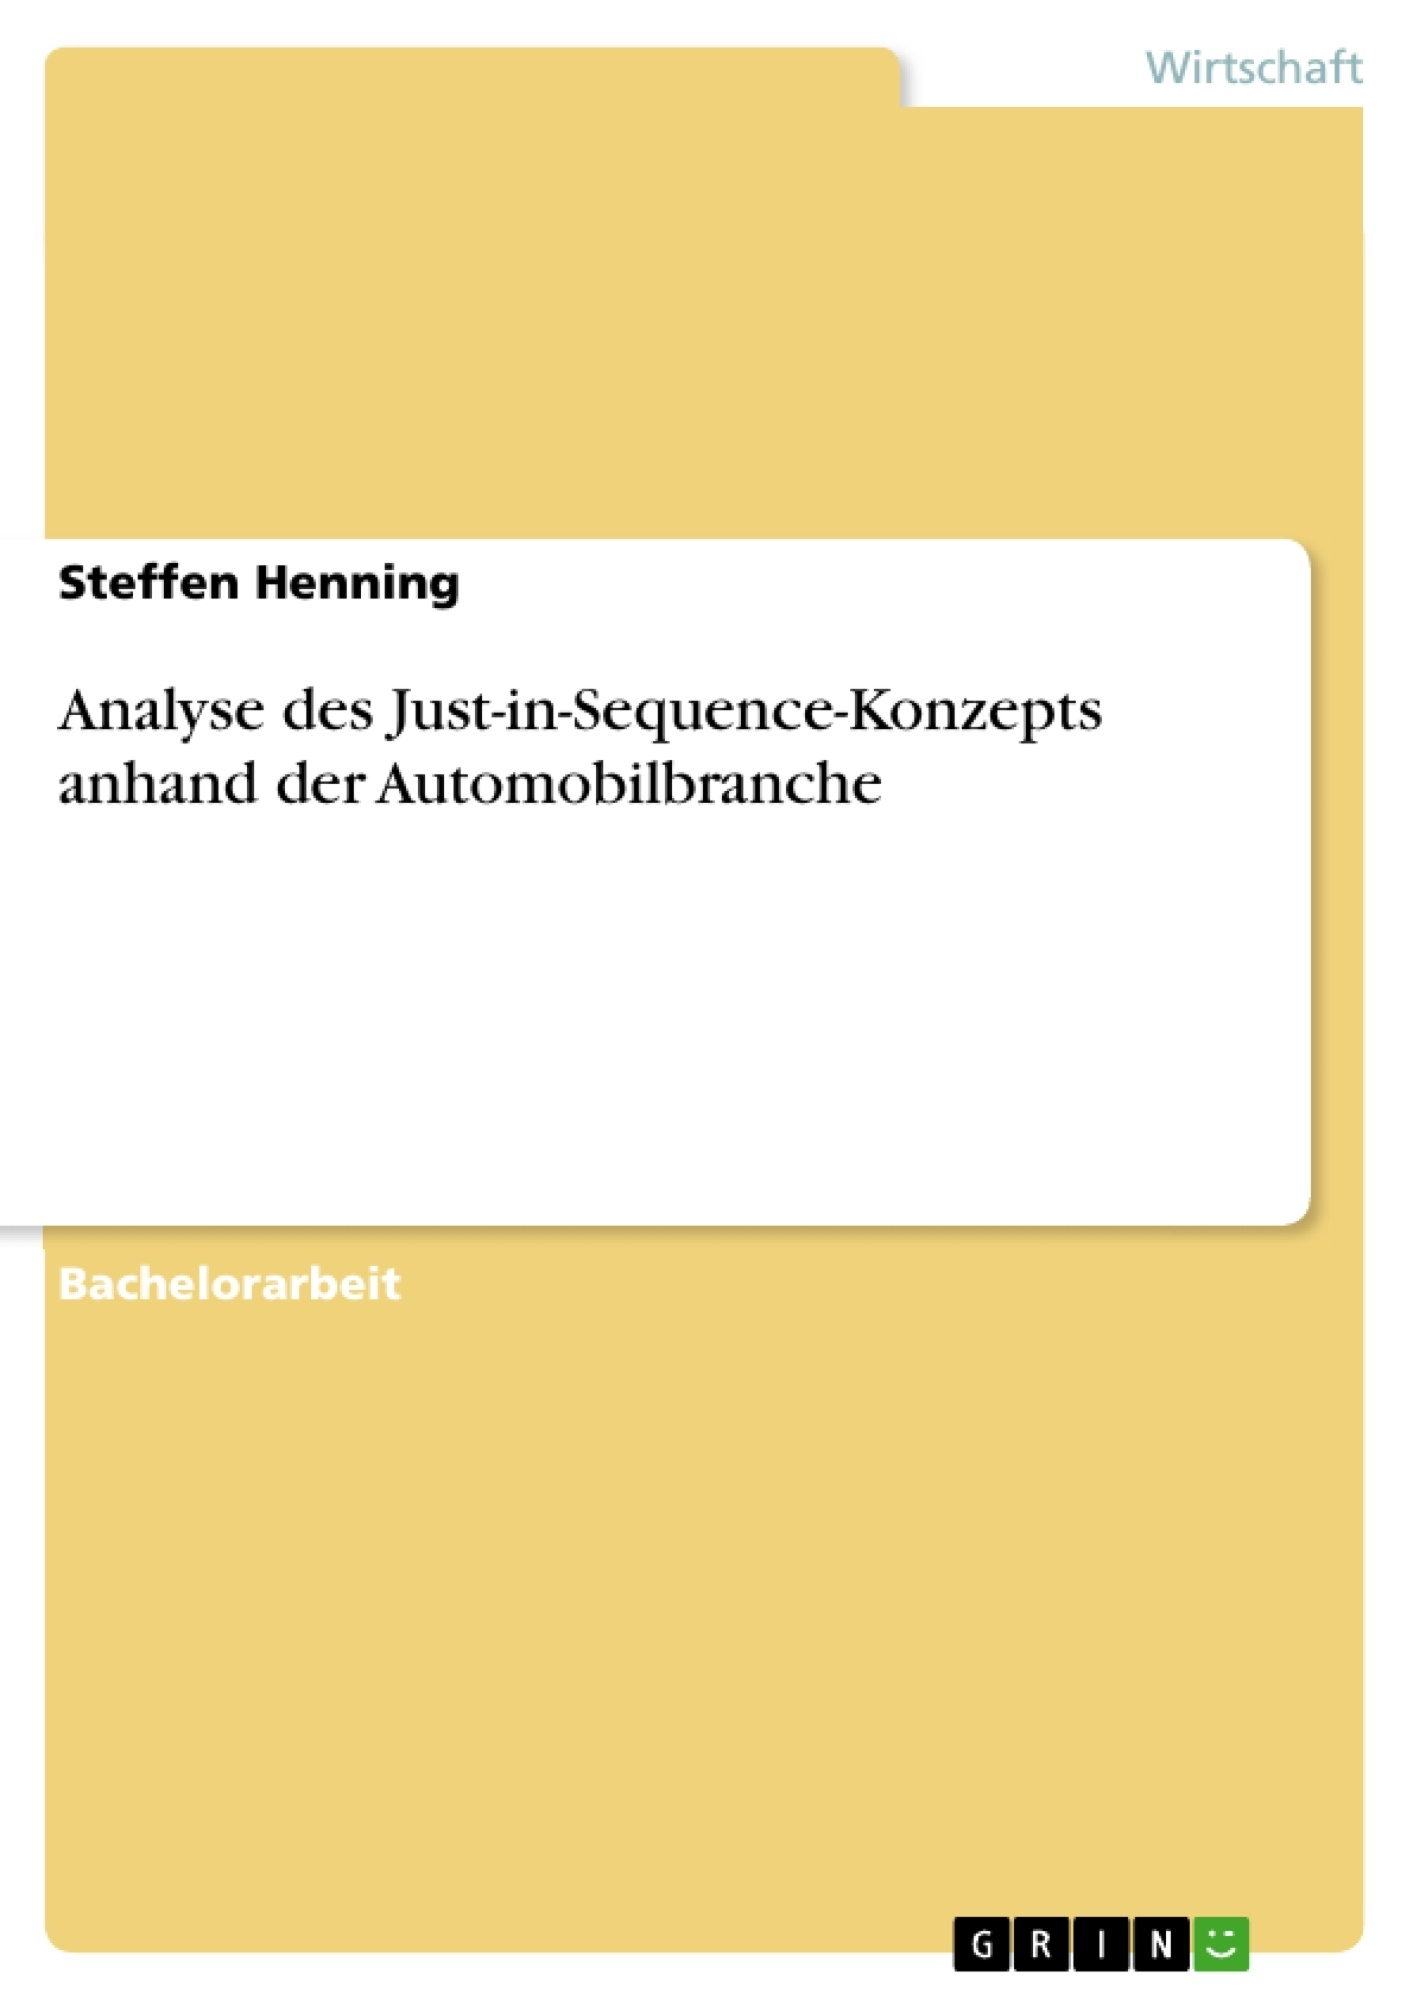 Titel: Analyse des Just-in-Sequence-Konzepts anhand der Automobilbranche